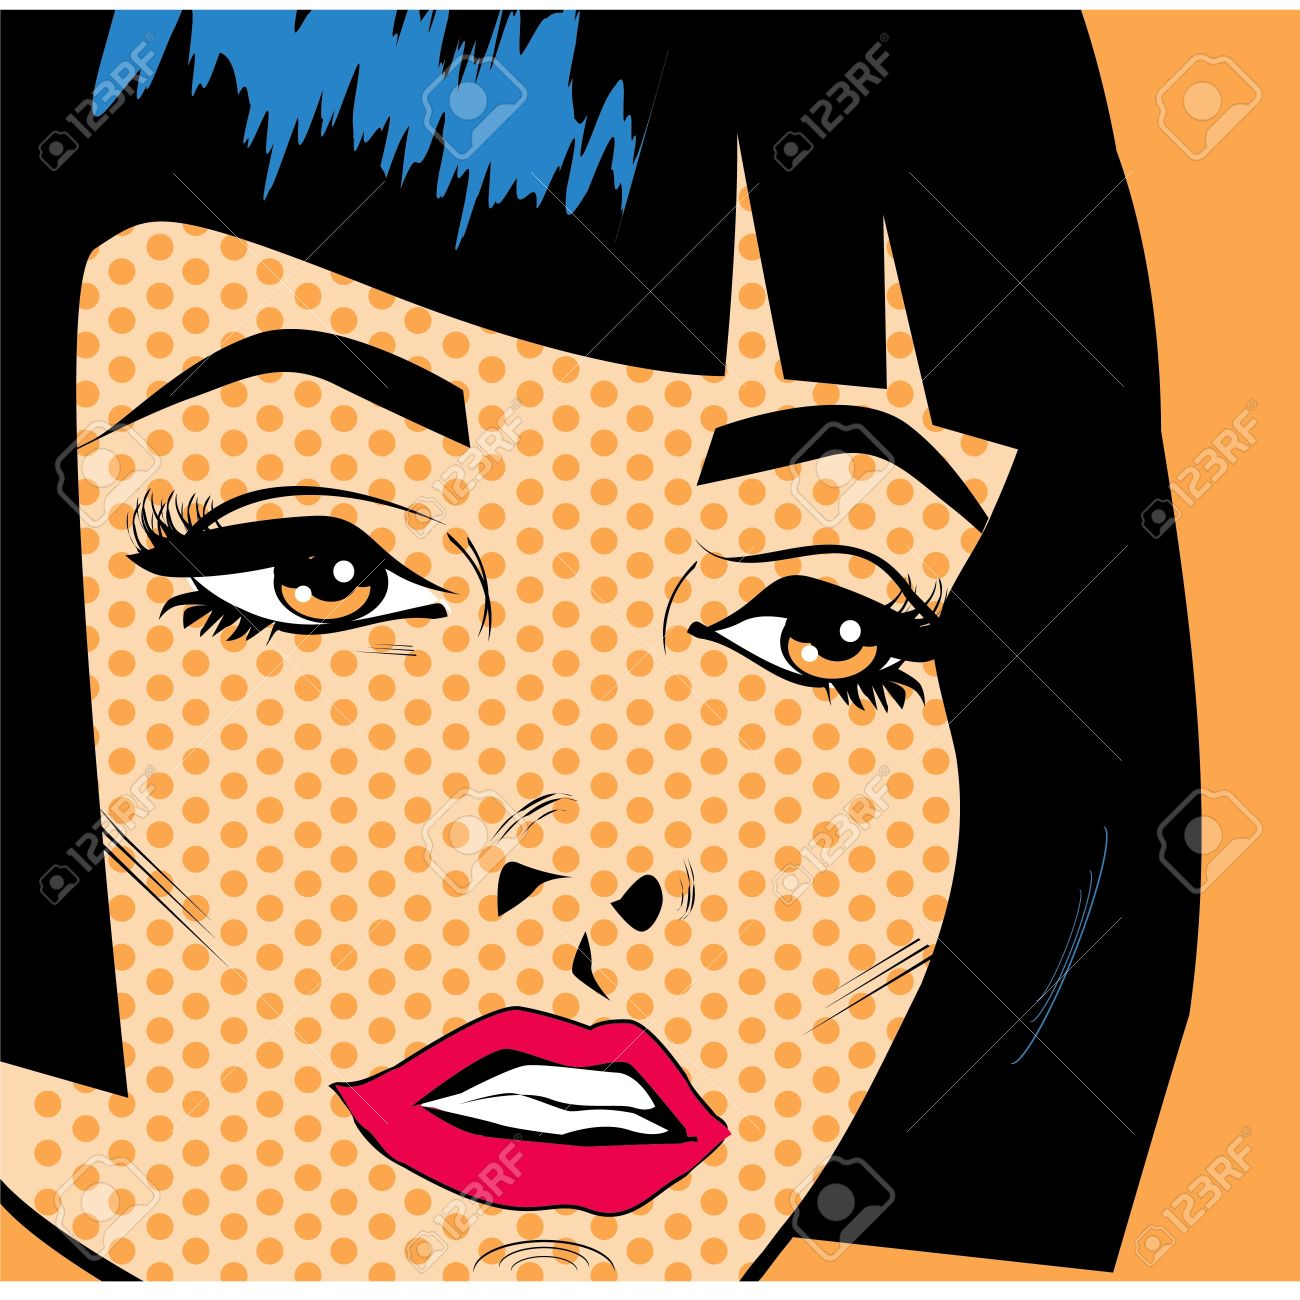 Vintage Woman Face Pop Art Retro Poster Royalty Free Cliparts